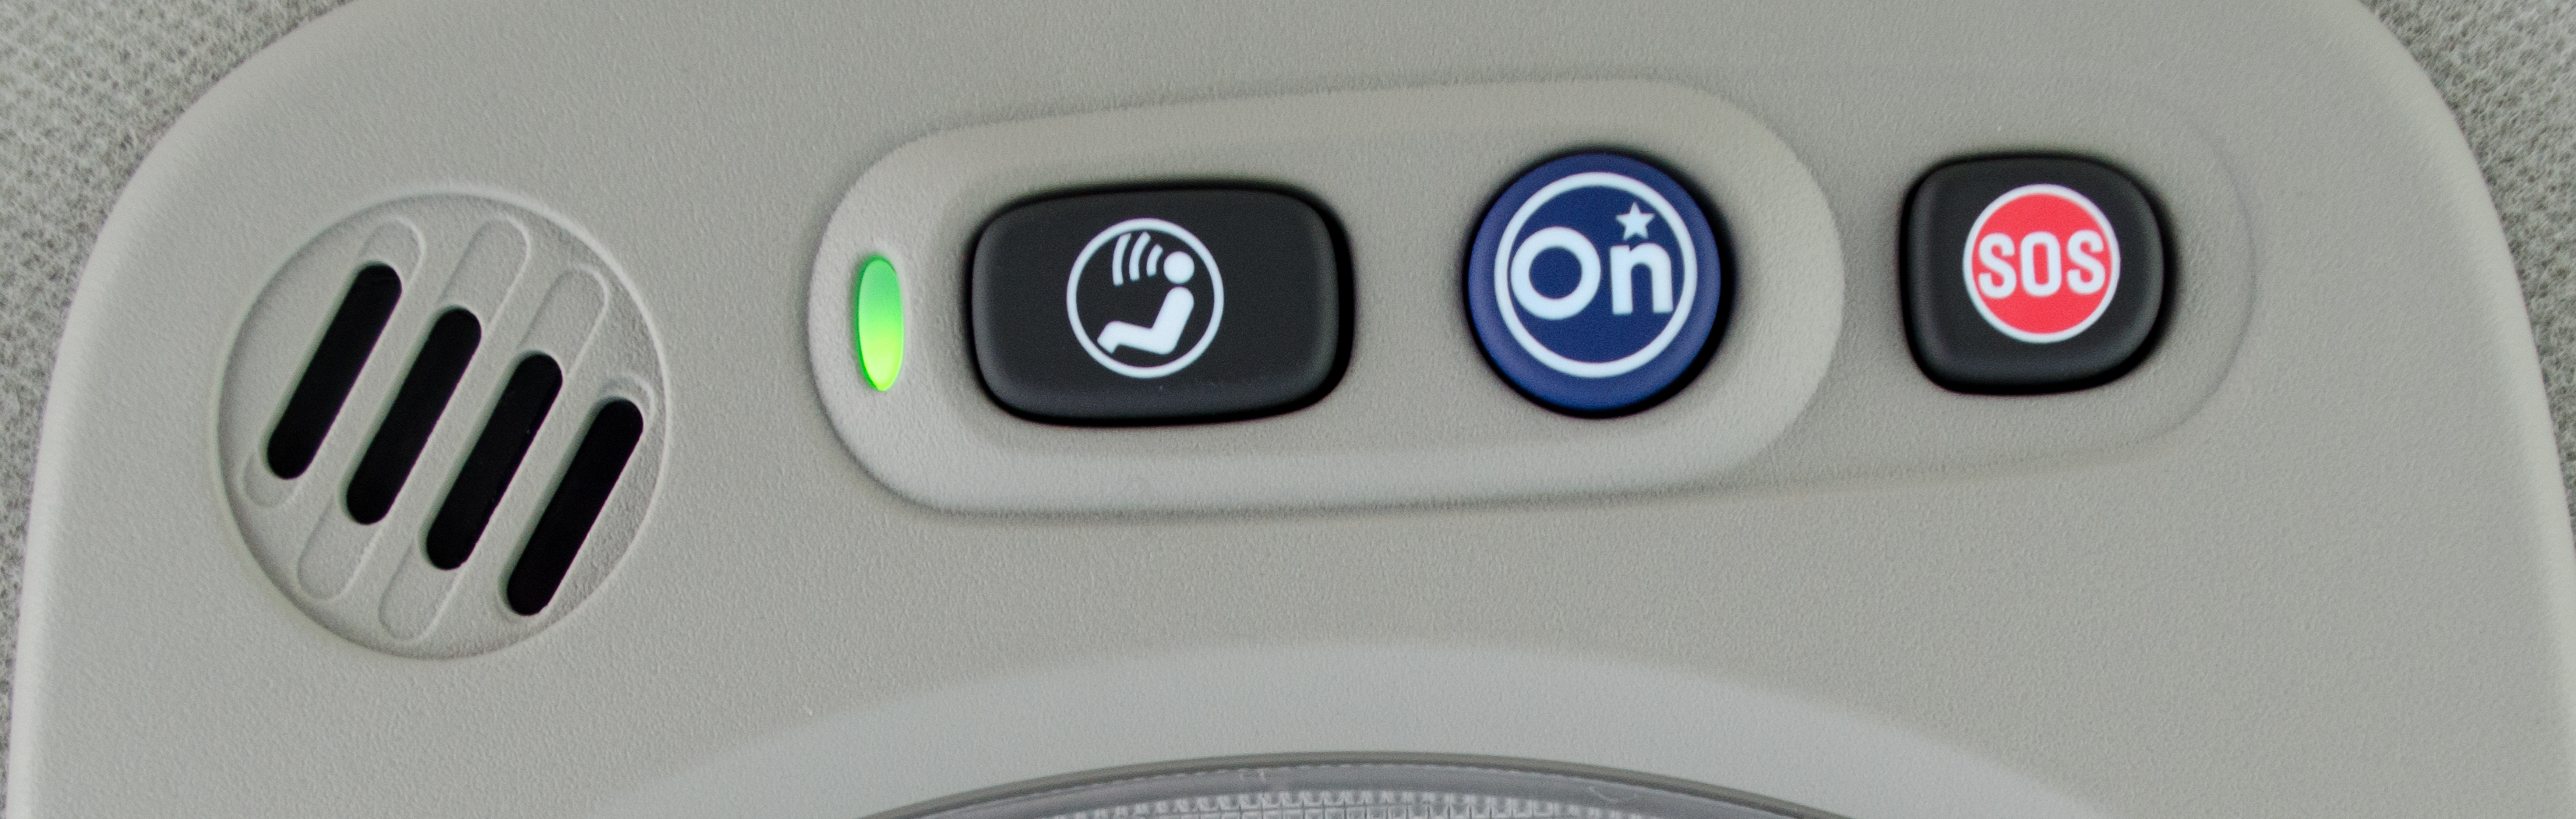 OnStar's 4 Most Useful Features - Motor Review